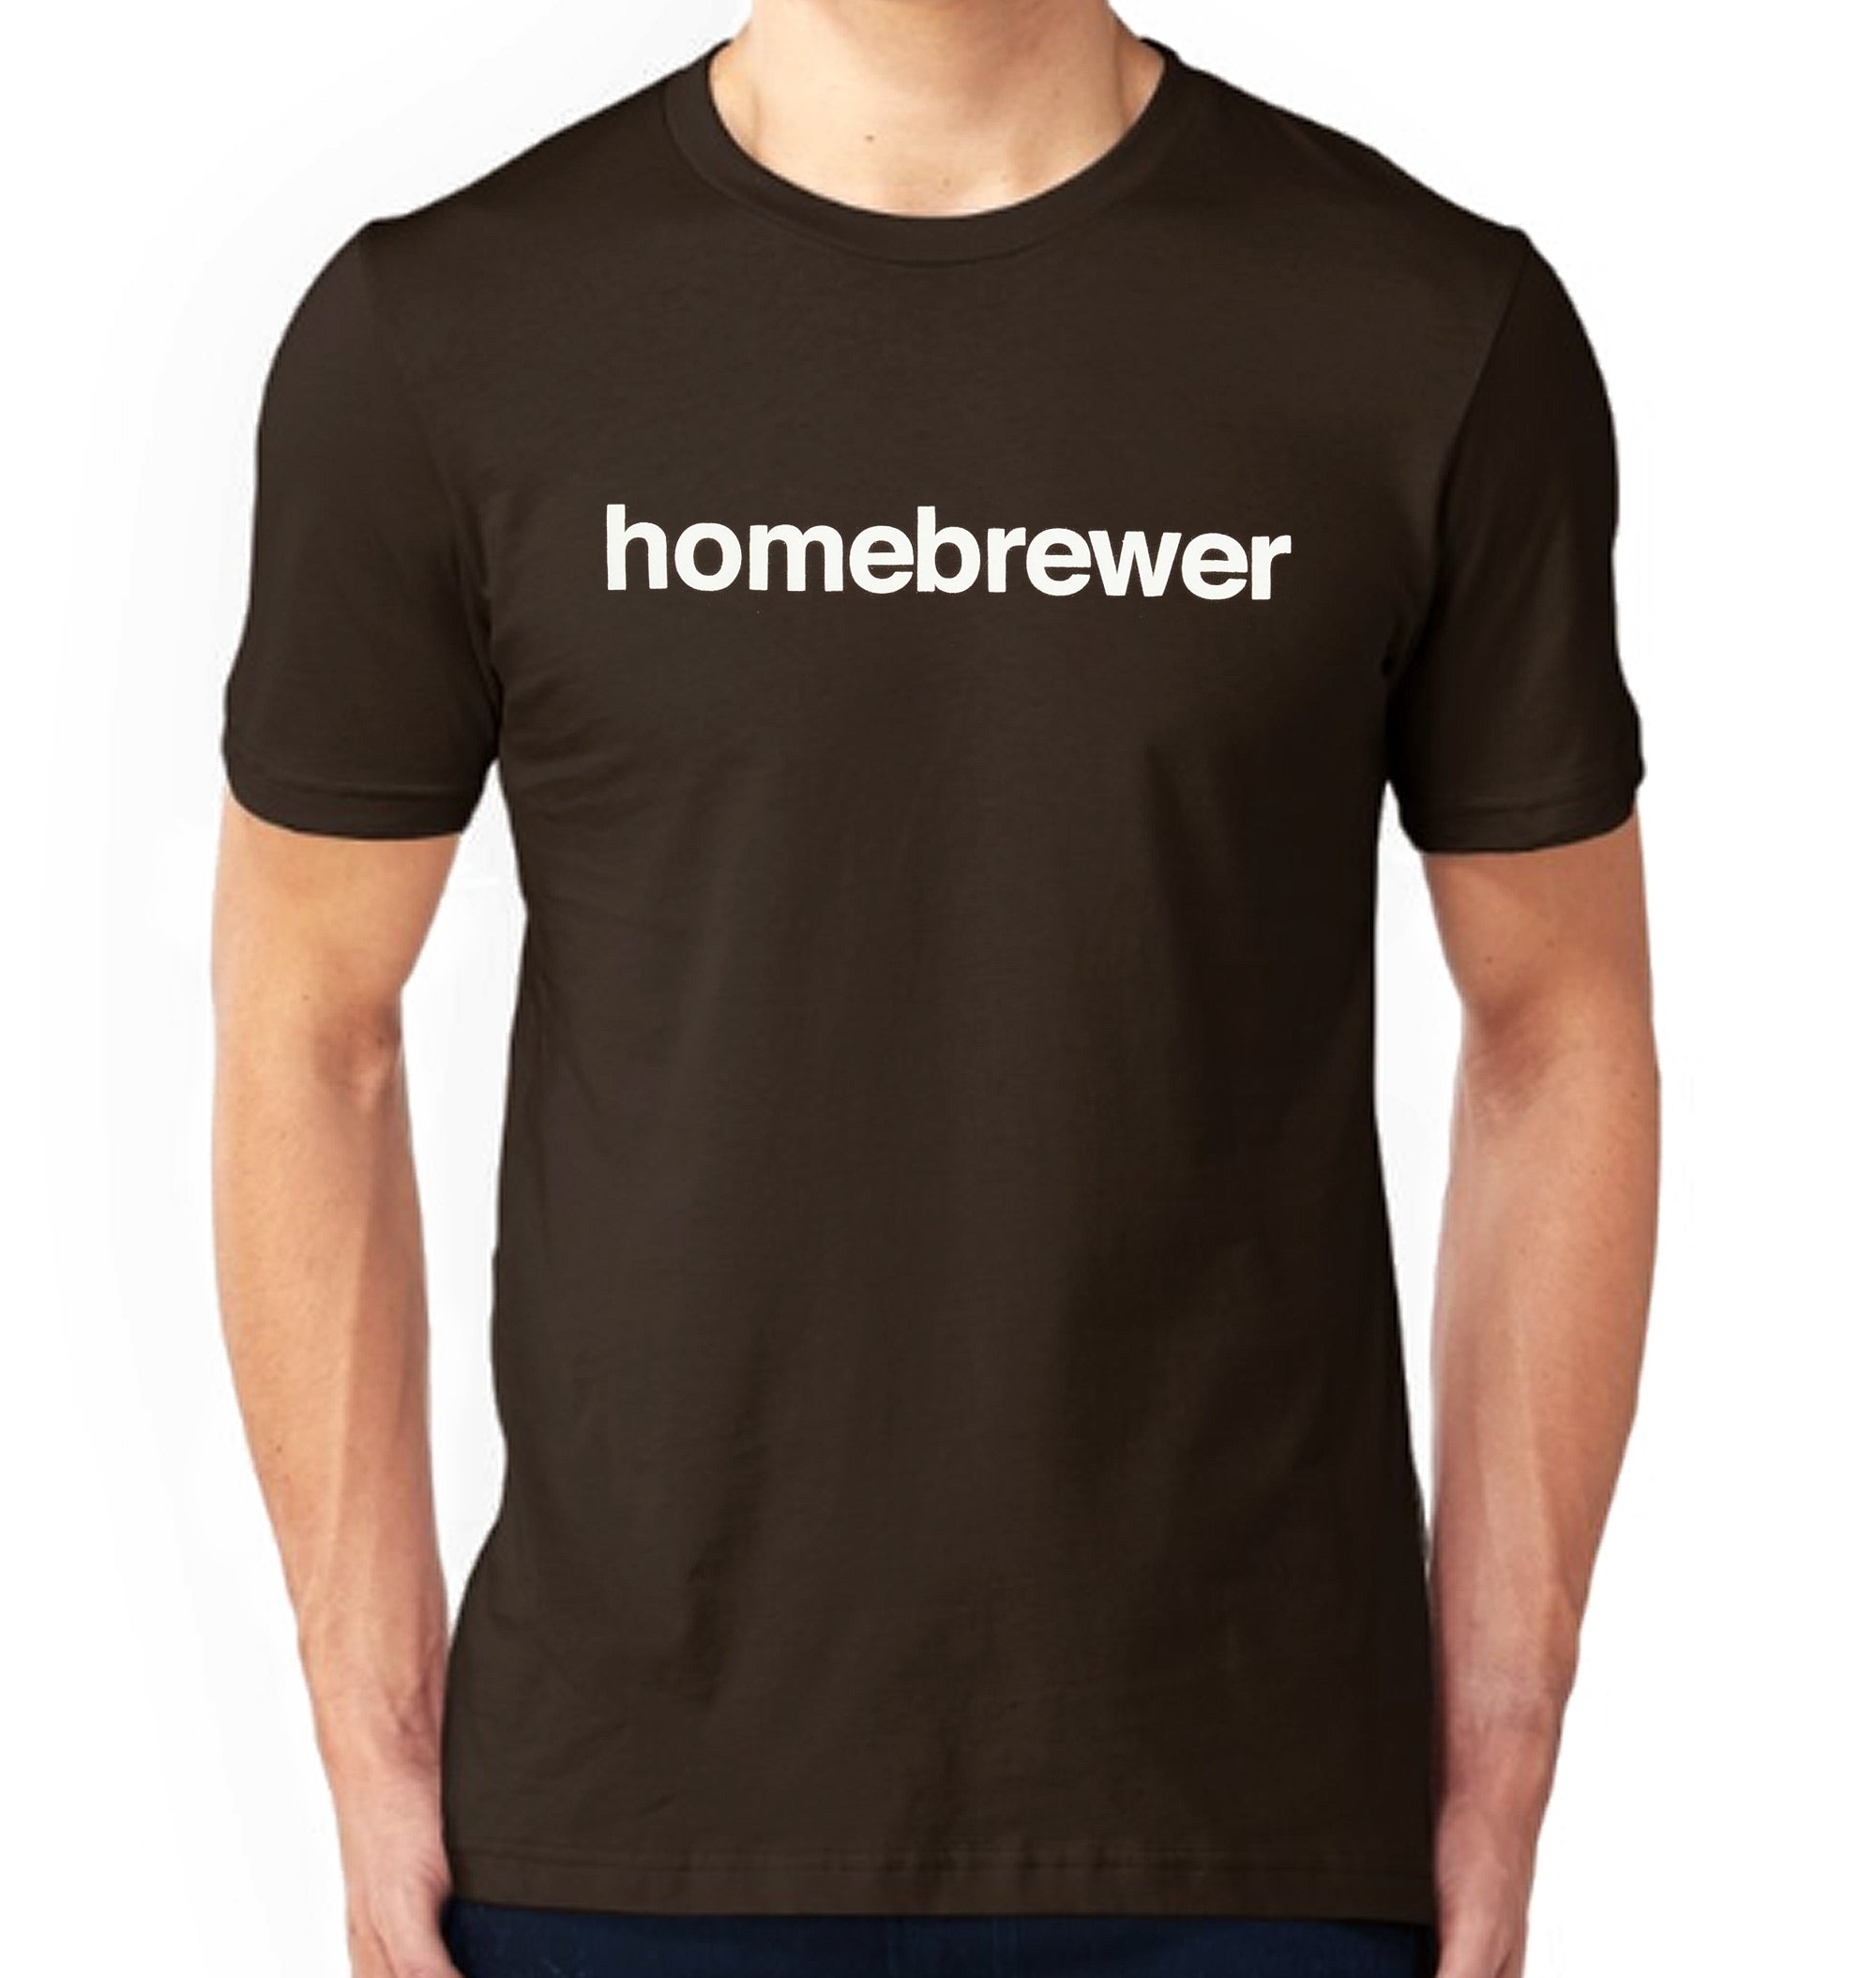 Homebrewer of Beer T-Shirt on Model